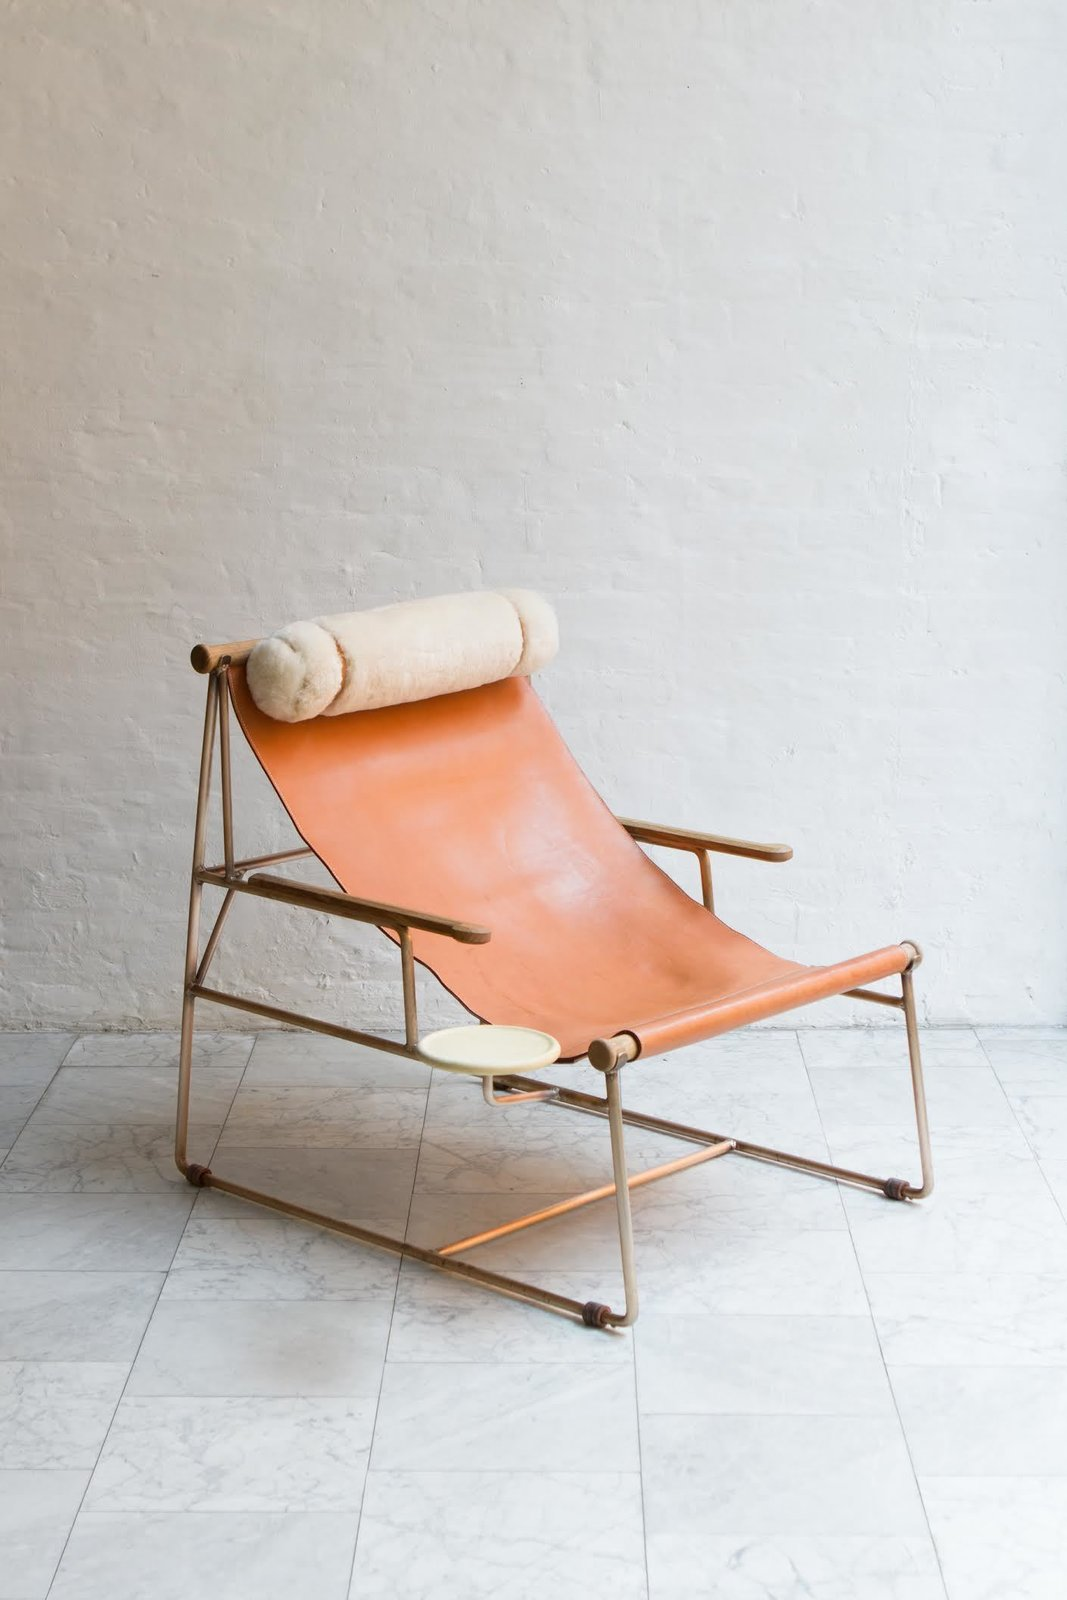 Deck Chair By BDDW, $5,880 Made At BDDWu0027s Philadelphia Workshop, This  Generously Proprortioned Chair